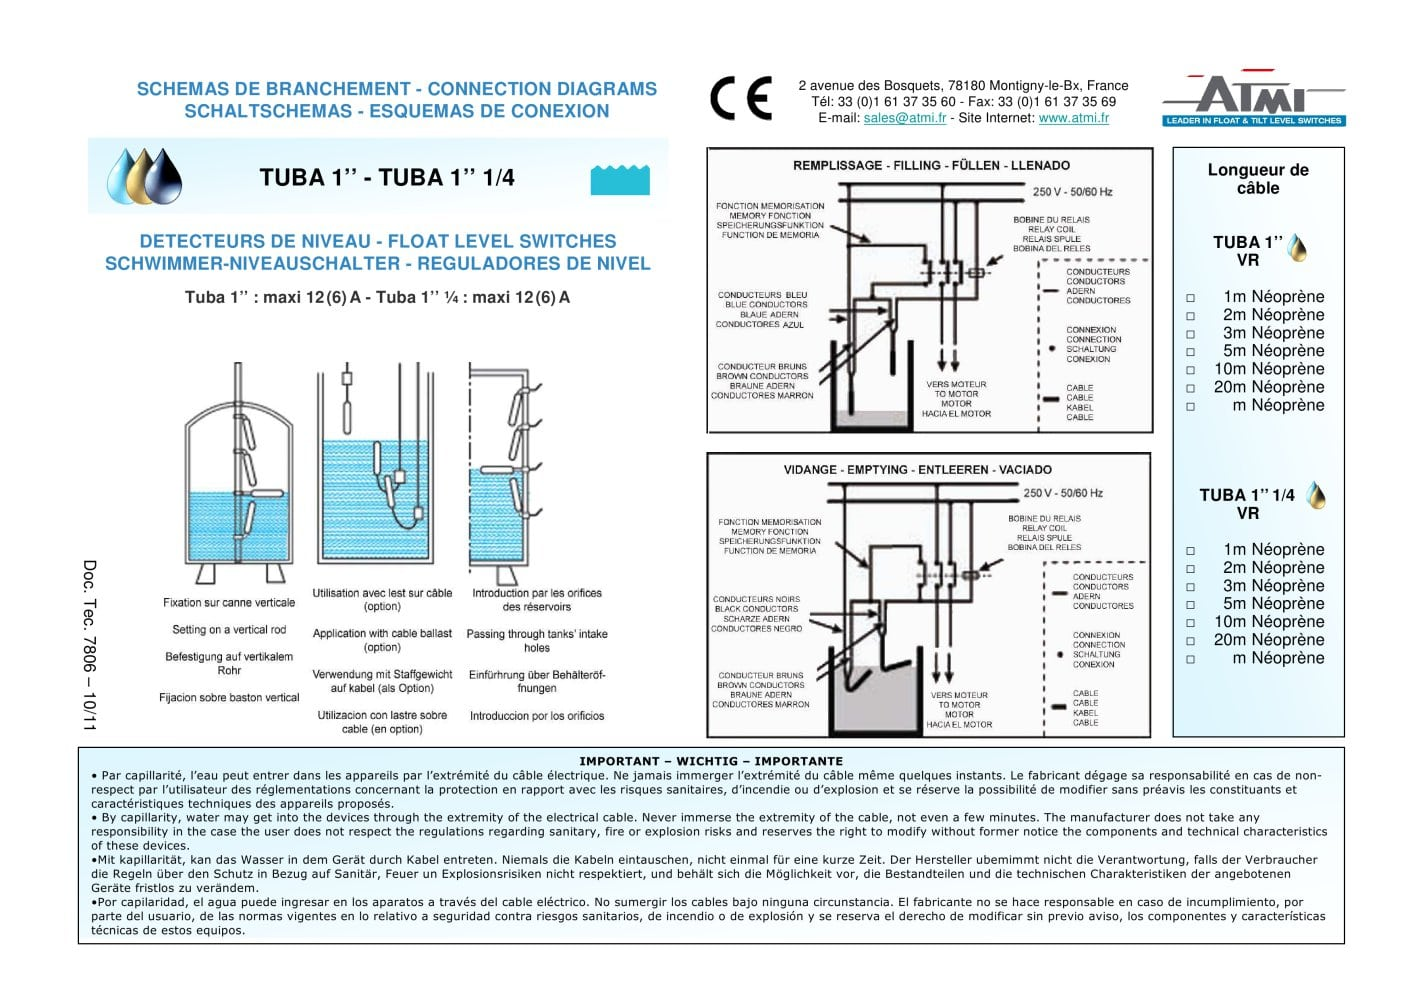 Wiring Diagrams Tuba Atmi Pdf Catalogue Technical Diagram For Cable Internet 1 Pages